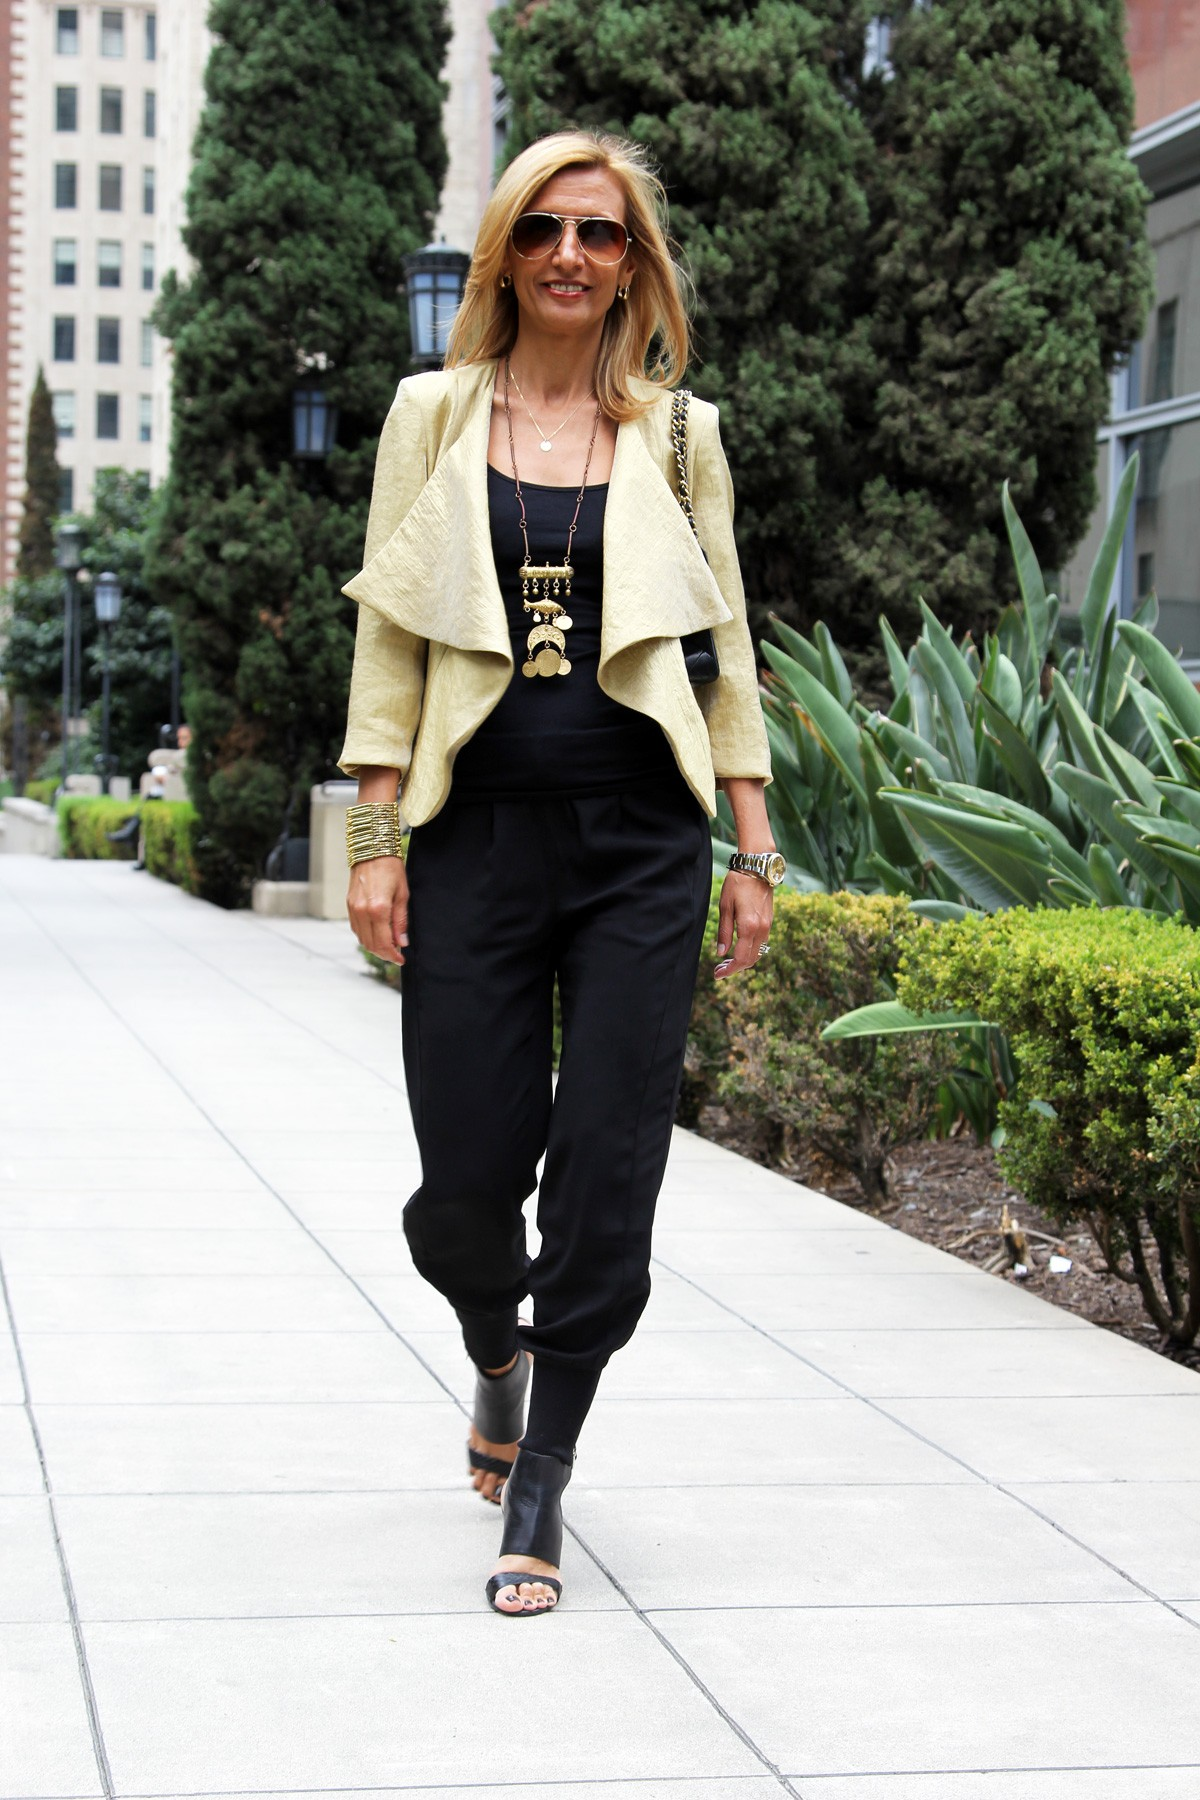 visiting-downtown-los-angeles-wearing-my-soleil-jacket-www.jacketsociety.com(7)